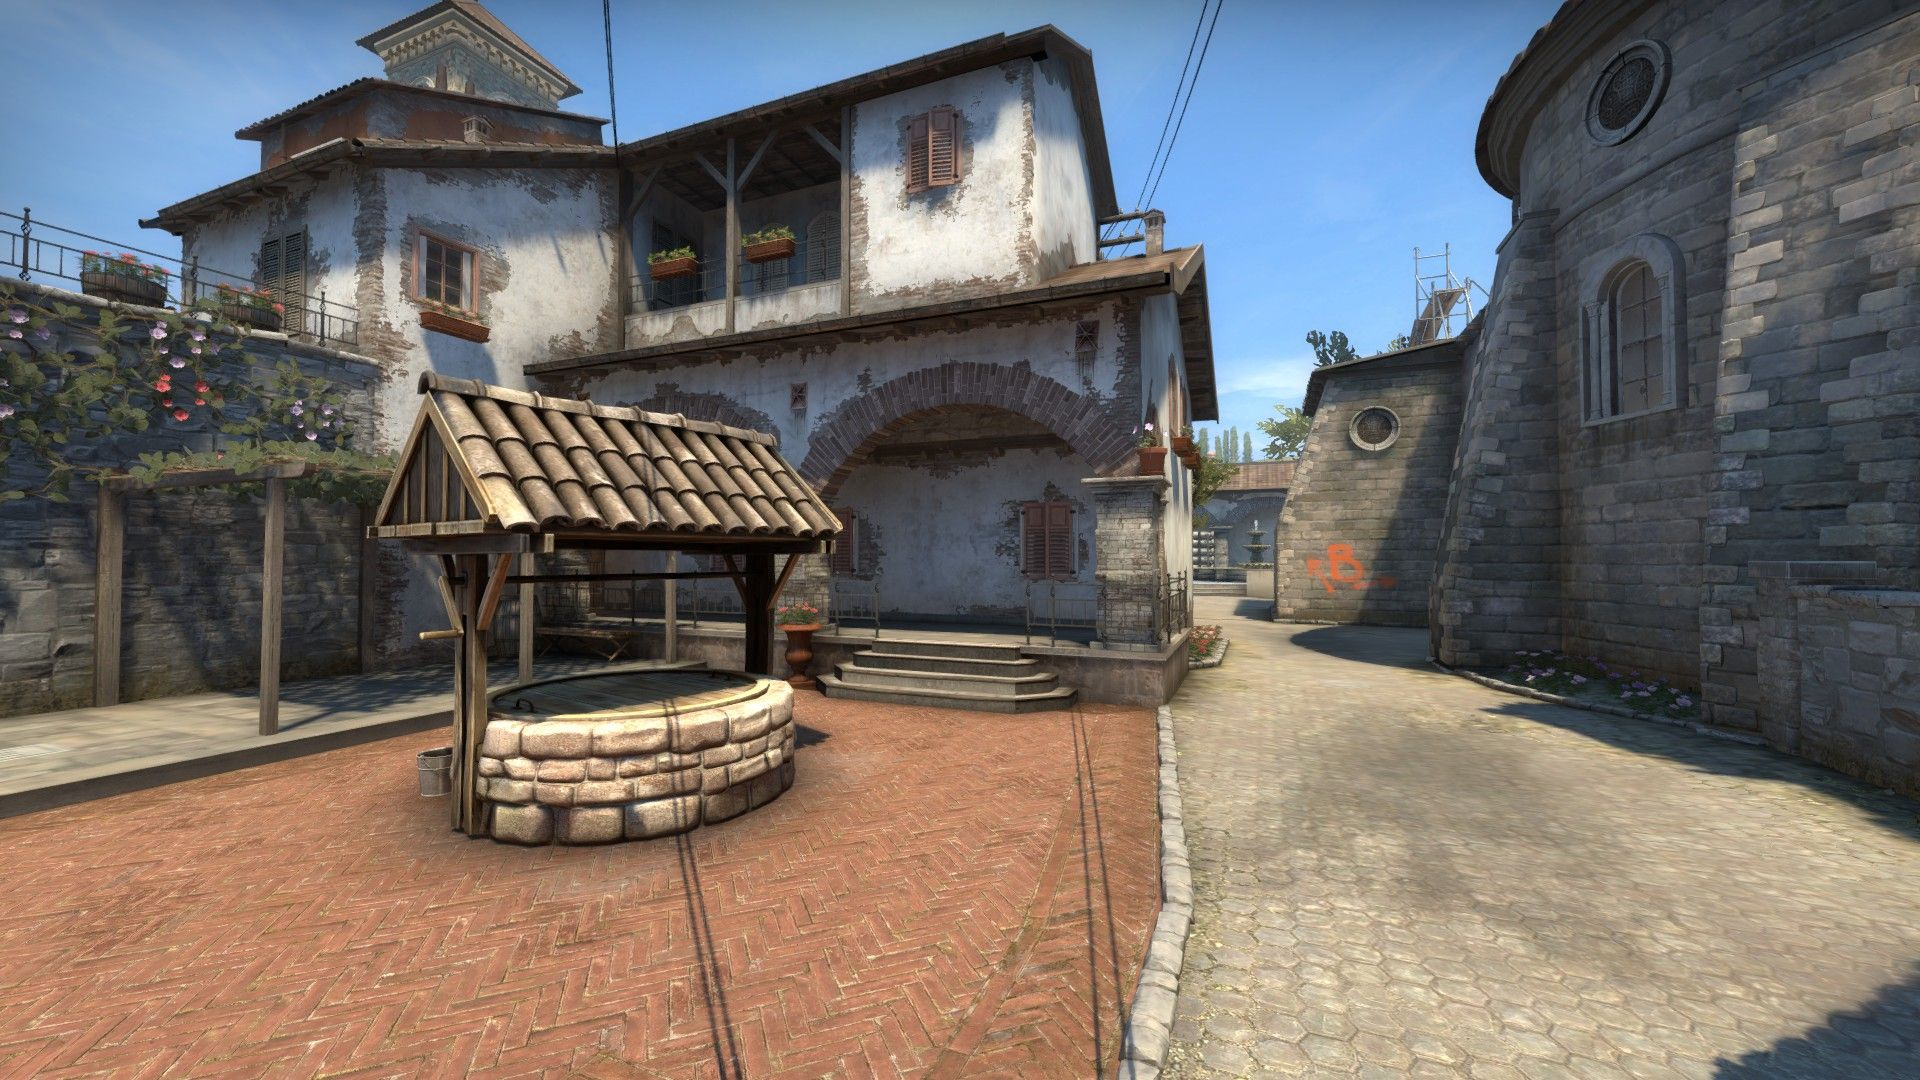 Counter-Strike: Global Offensive update for November 23, 2019